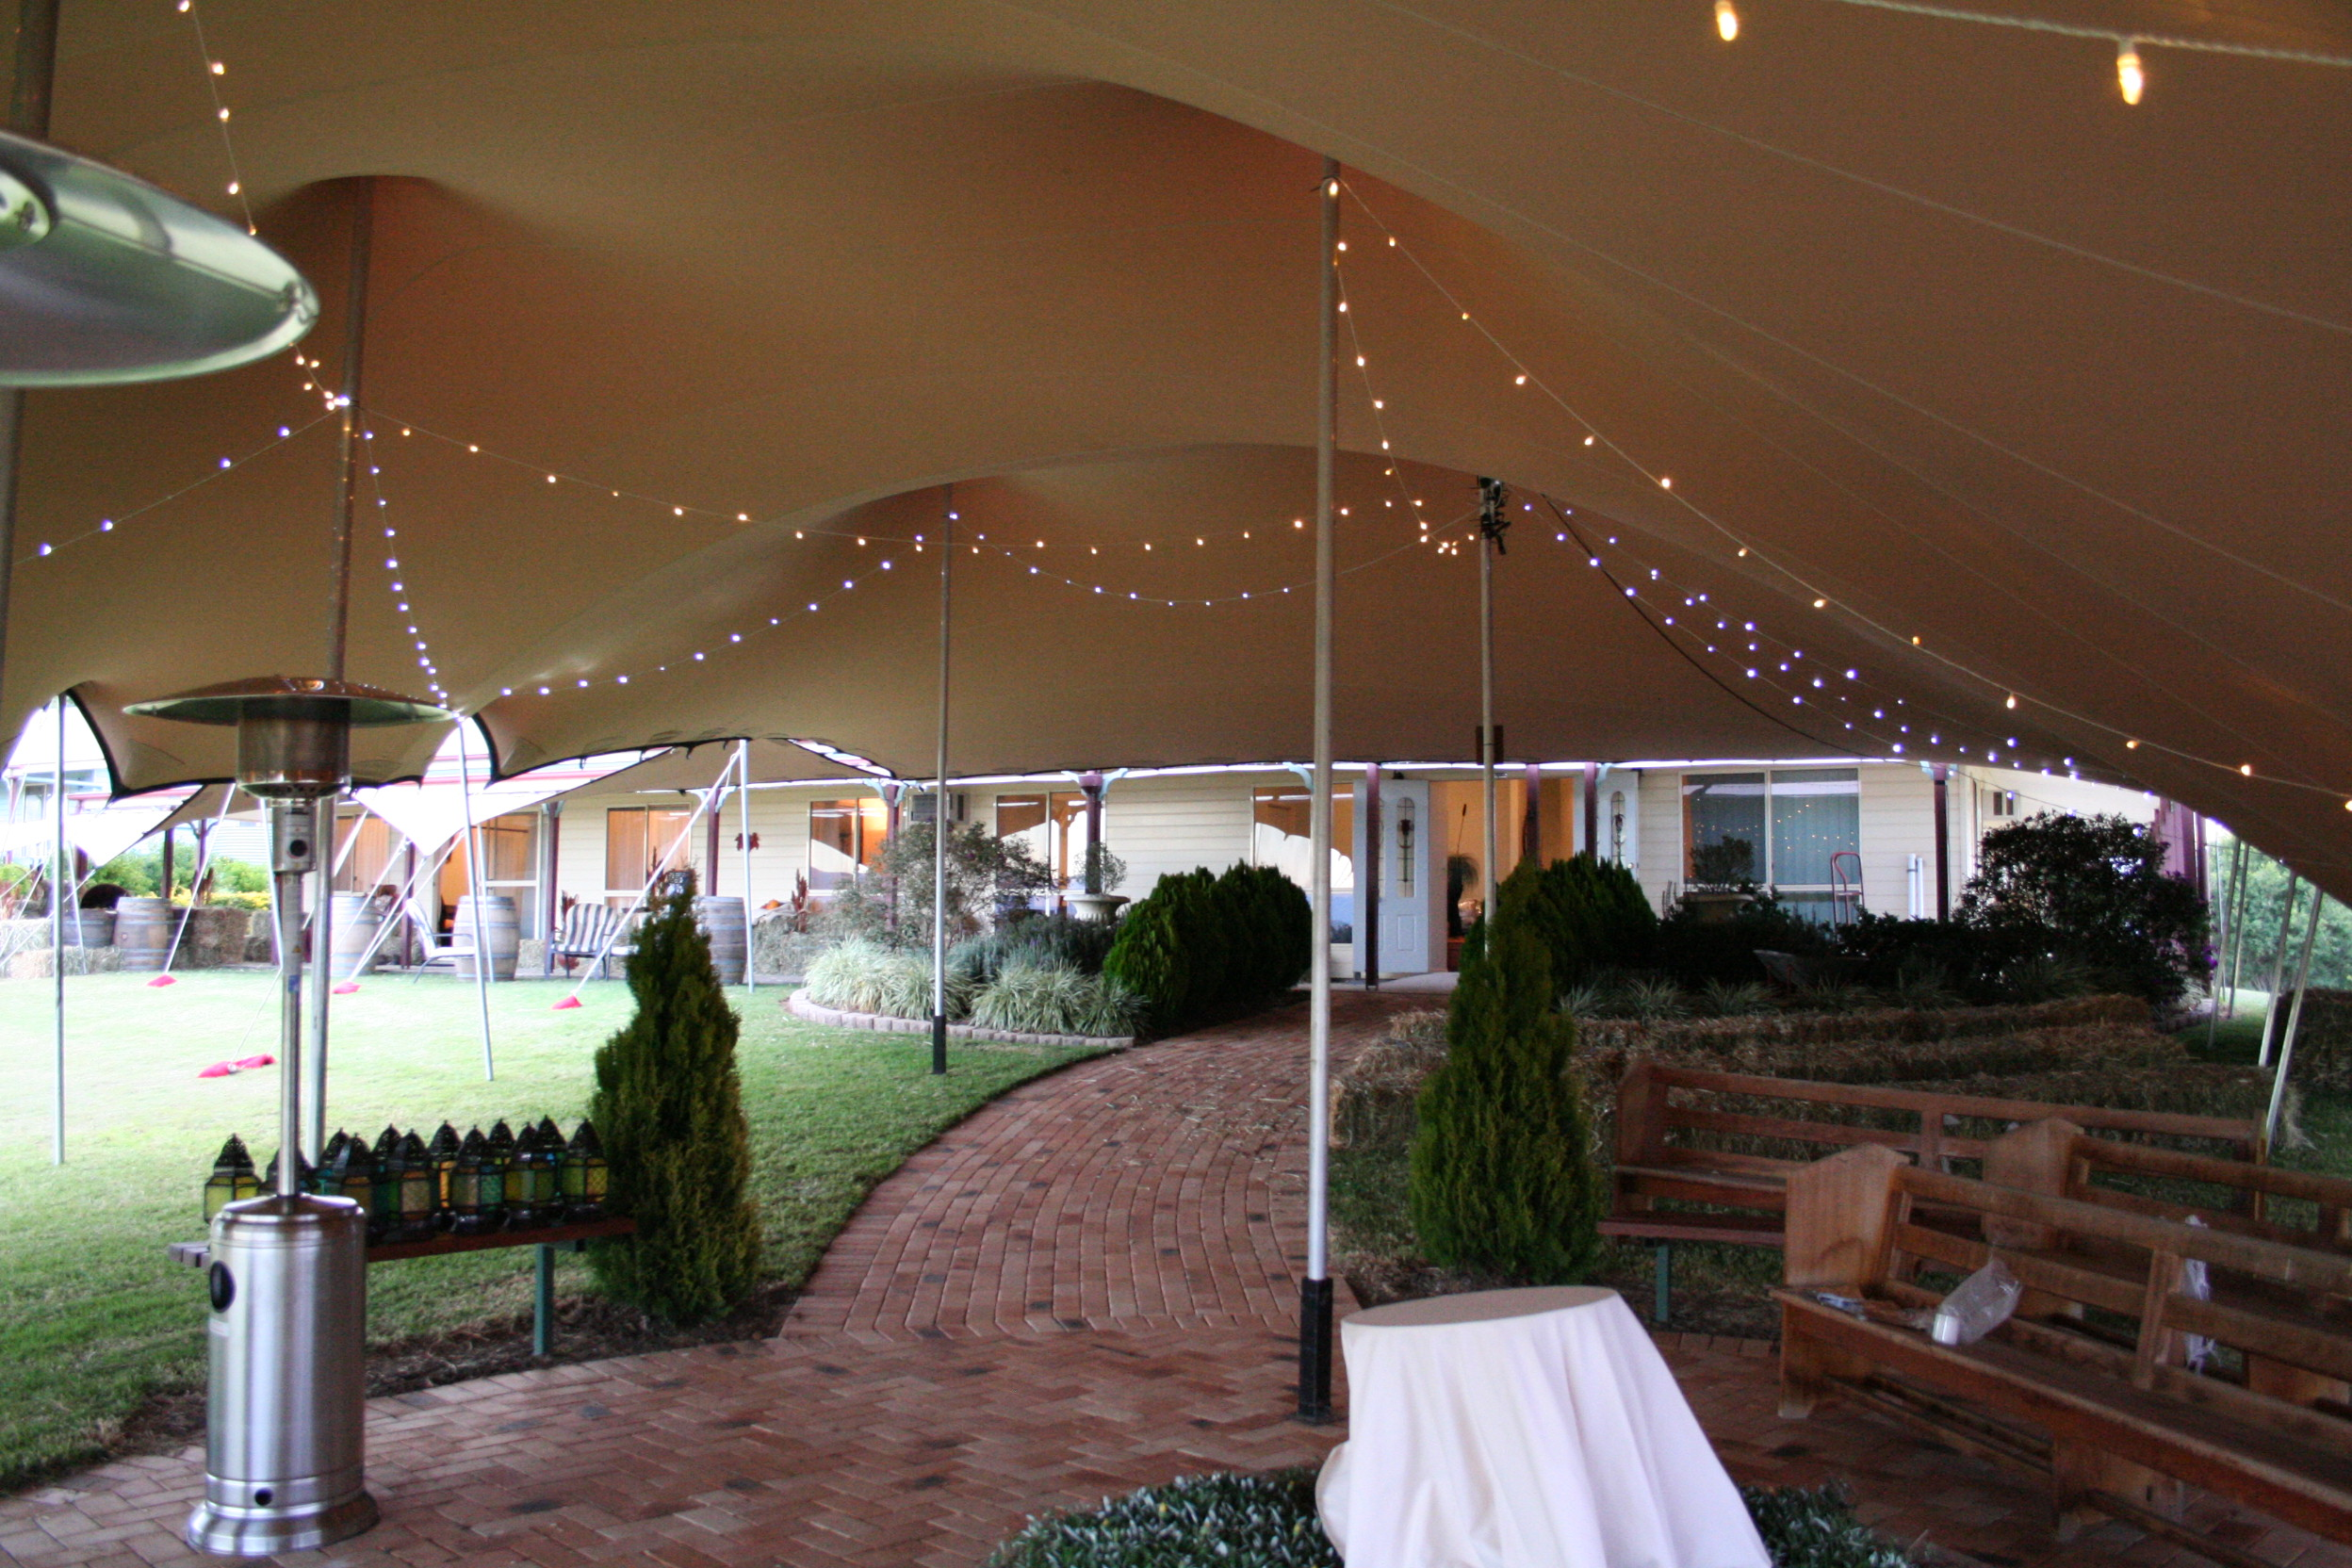 Bedouin Stretch Tent for weddings and parties & Stretch Tents u0026 Marquee Hire Sydney - Nomadic Tents Australia